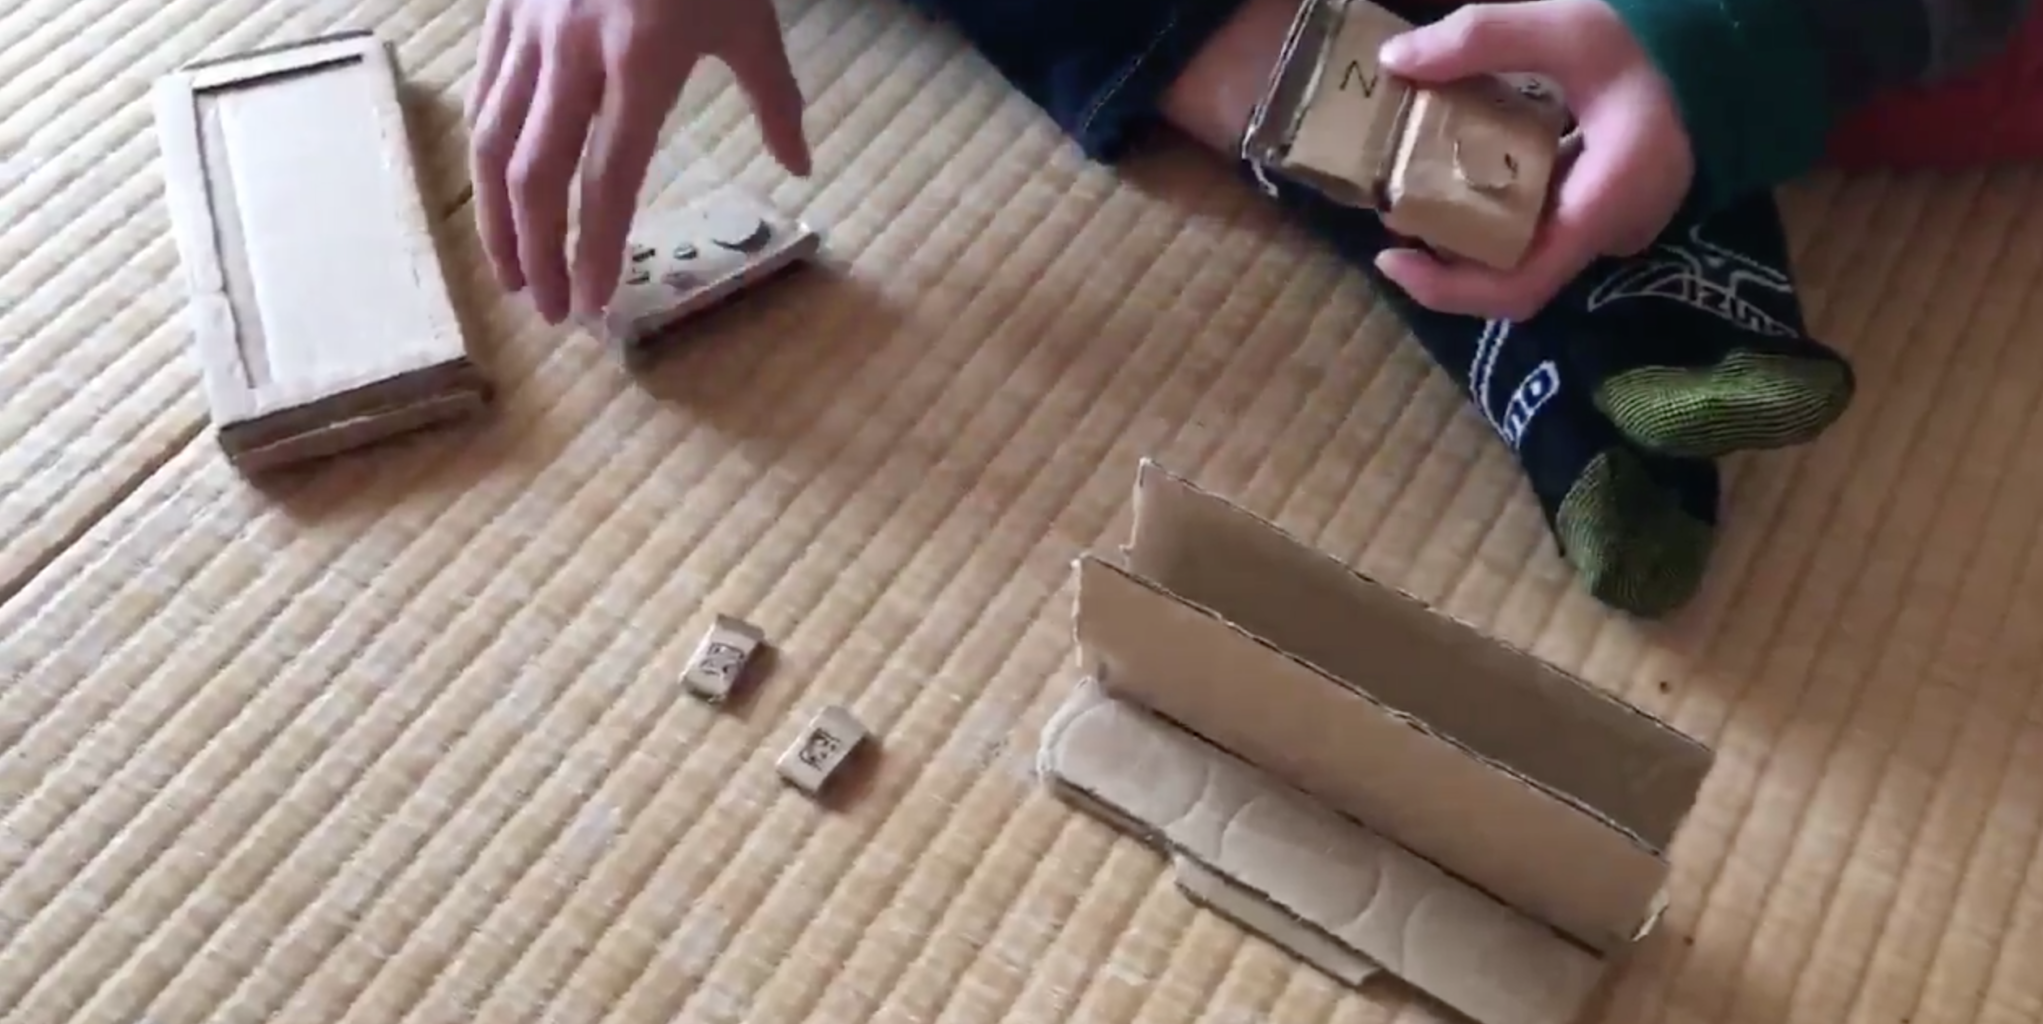 Young Boy Crafts A Switch Out Of Cardboard Because His Mum Wouldn't Buy A Real One